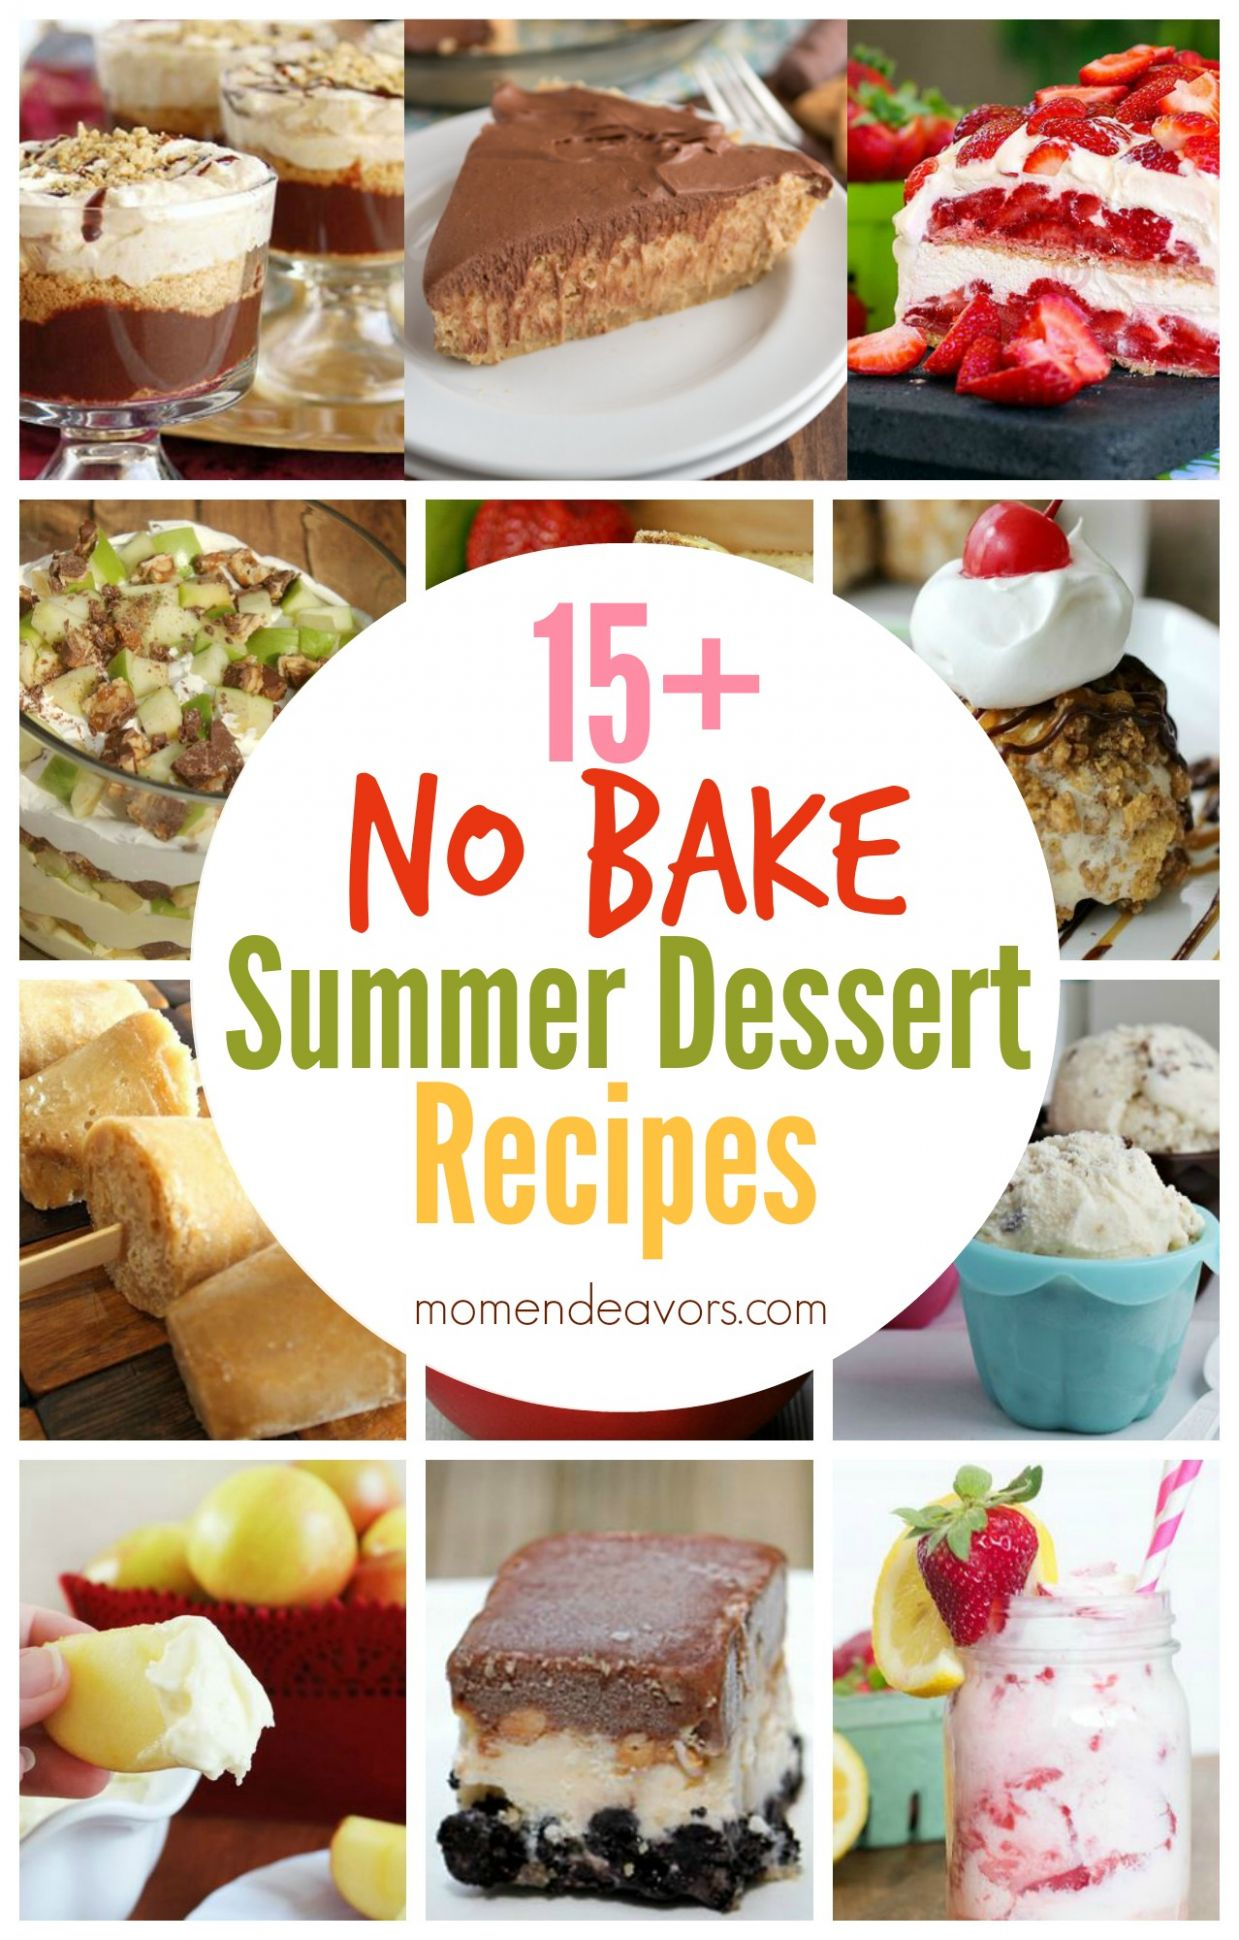 12+ No Bake Summer Dessert Recipes - Mom Endeavors - Summer Recipes Baking